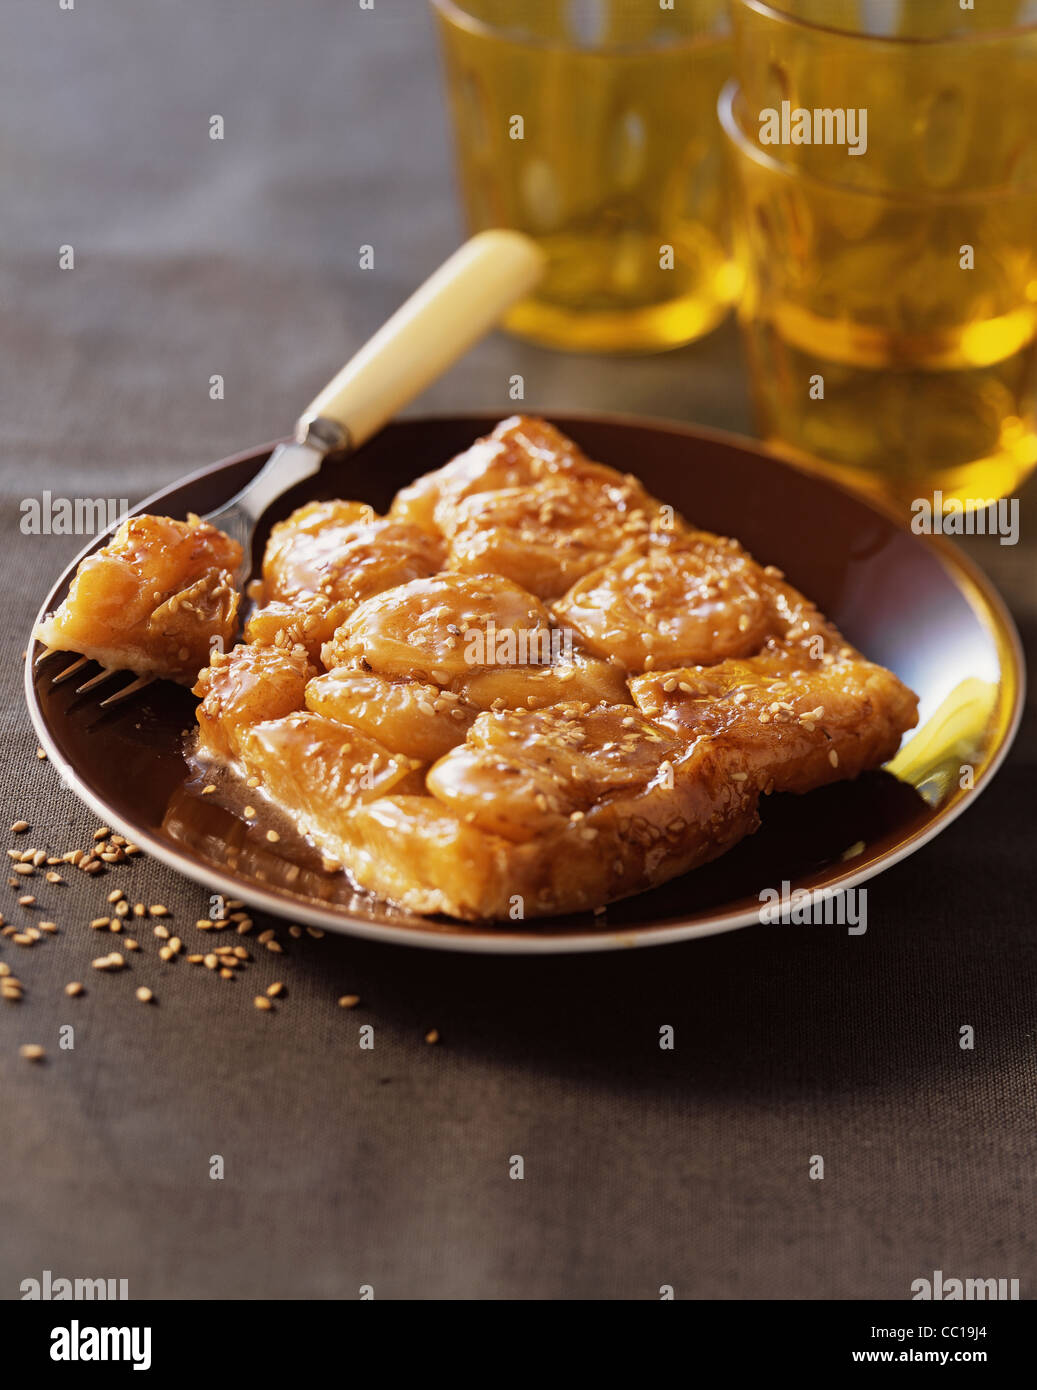 Apricots Tatin Pie with Sesame Seeds - Stock Image